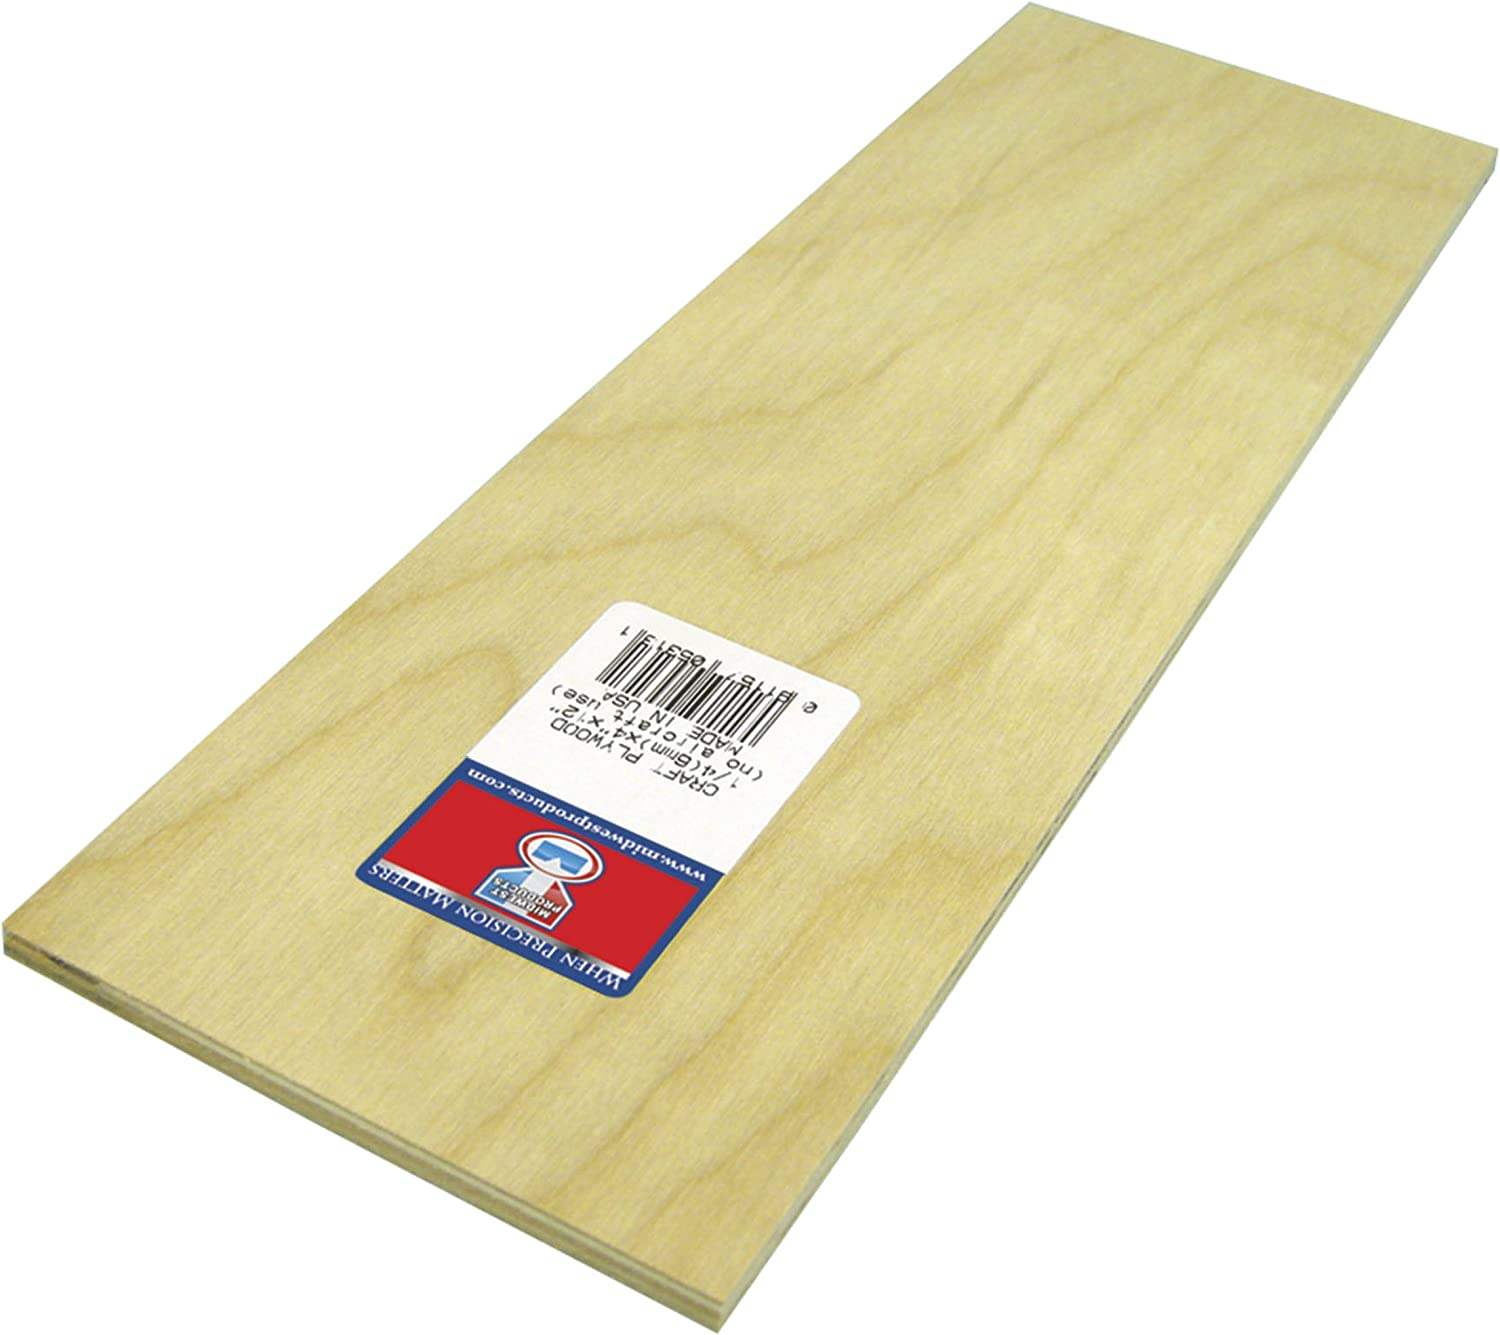 Midwest Products Co In 5316 Plywood Craft 0.25 x 12 x 24 in Pack Of 6